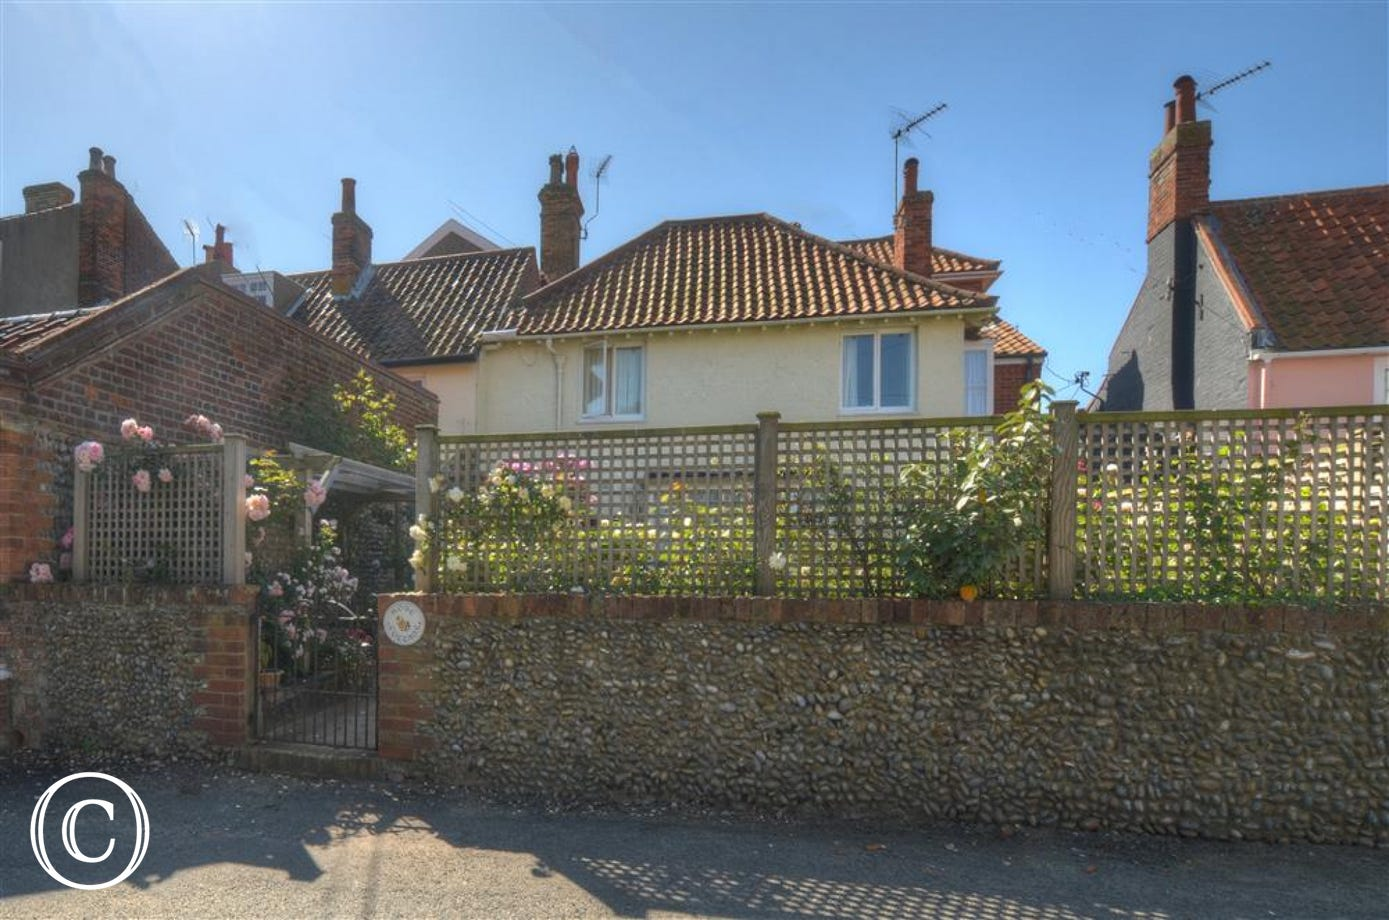 Rose Cottage is located in St James Green, with the Sole Bay Pub, Sweet Shop and the sea just yards away.